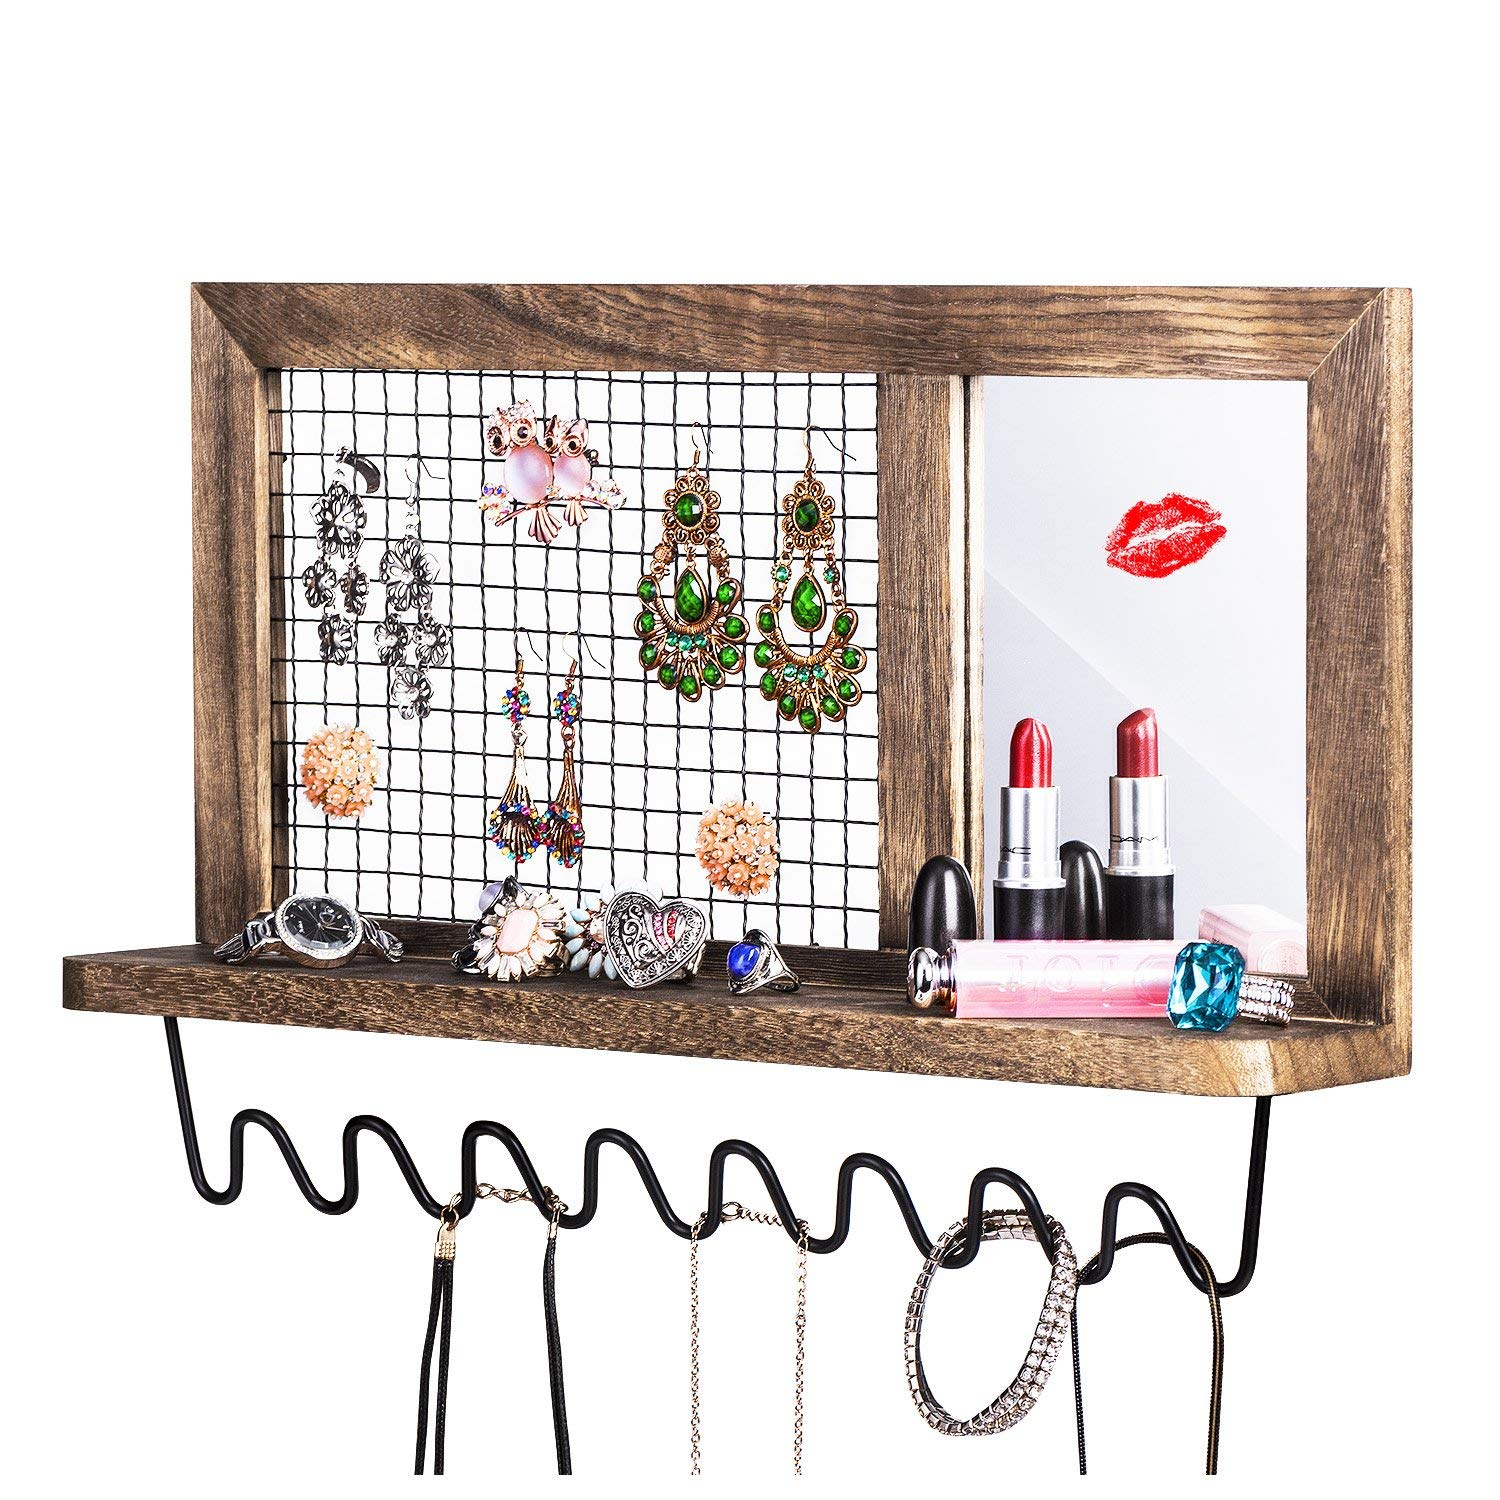 Jewelry Organizer, SRIWATANA Wall Mount Metal Wood Jewelry Holder, Necklace, Earrings, Rings, Lipstick Holder Organizer with Makeup Mirror